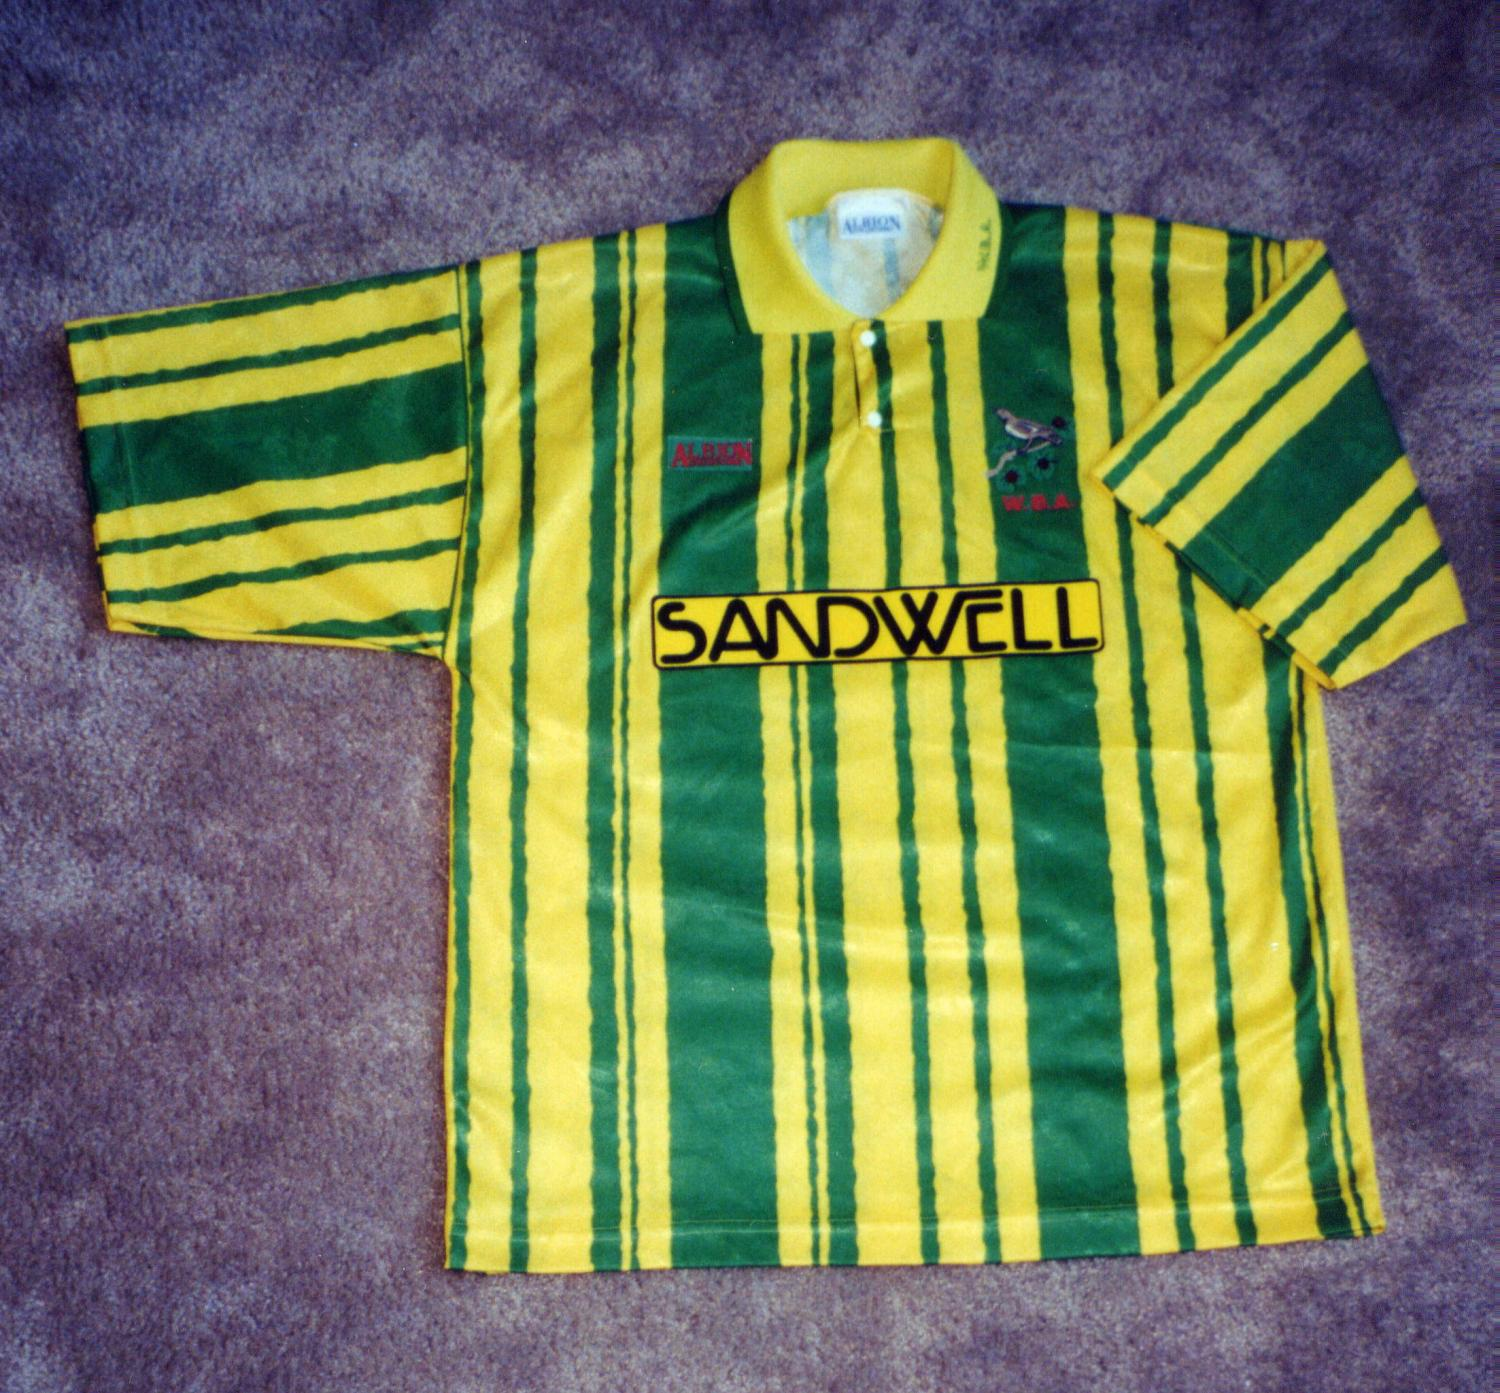 West Bromwich Albion Third Football Shirt 1992 1993 Sponsored By Sandwell